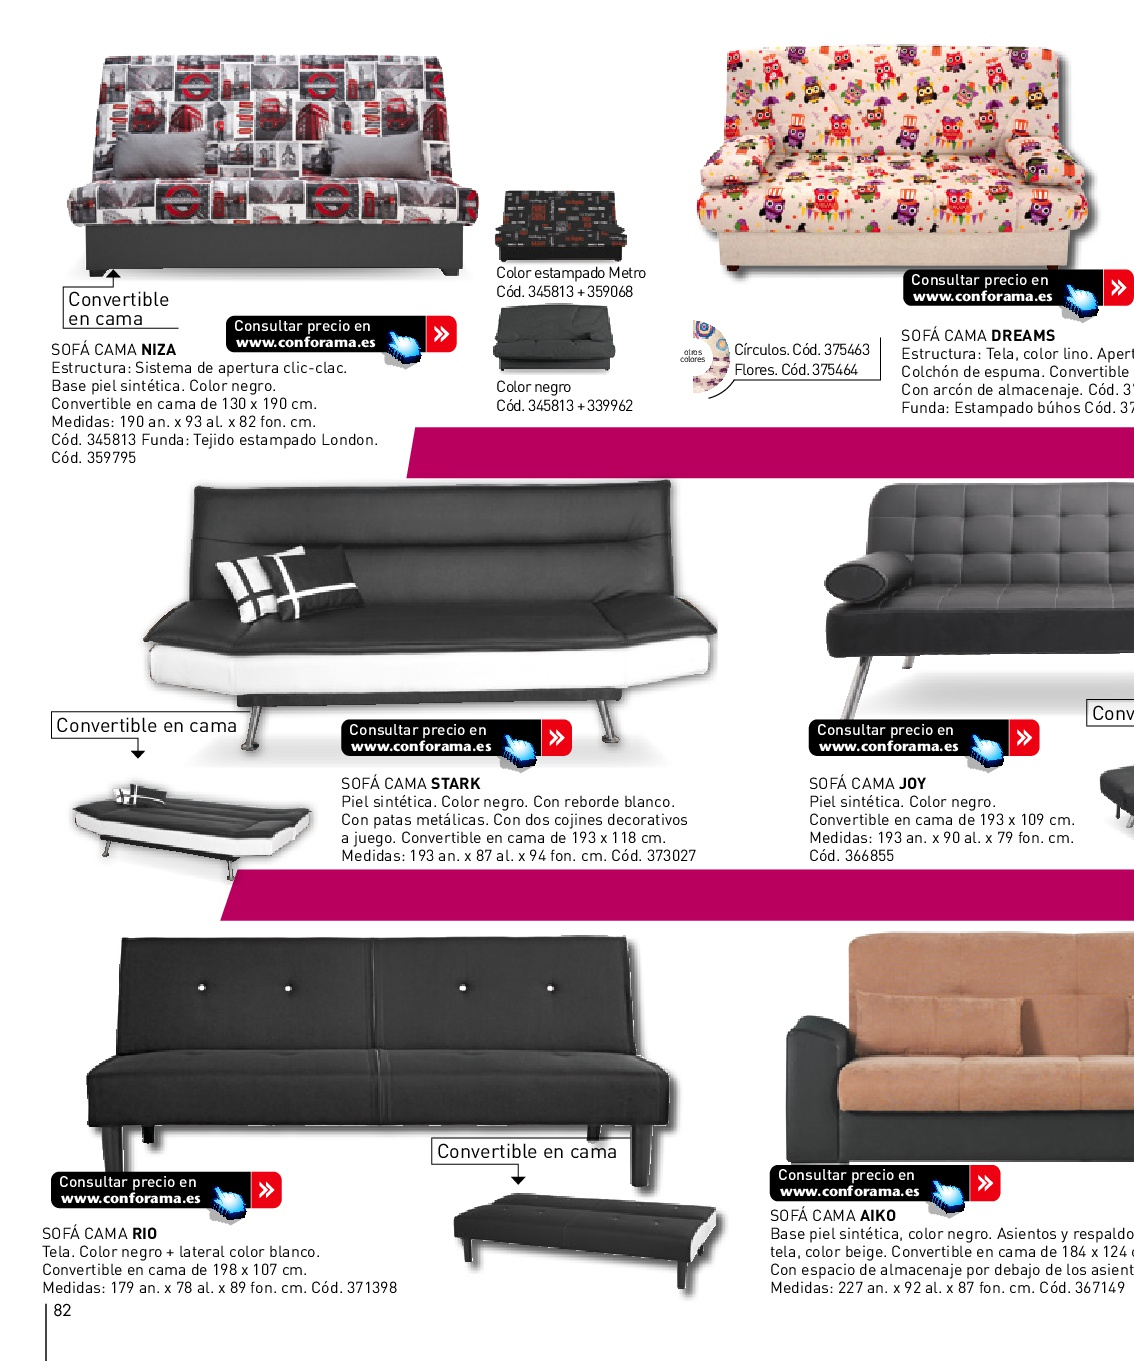 Sofa Cama Niza Conforama.Decorablog Revista De Decoracion